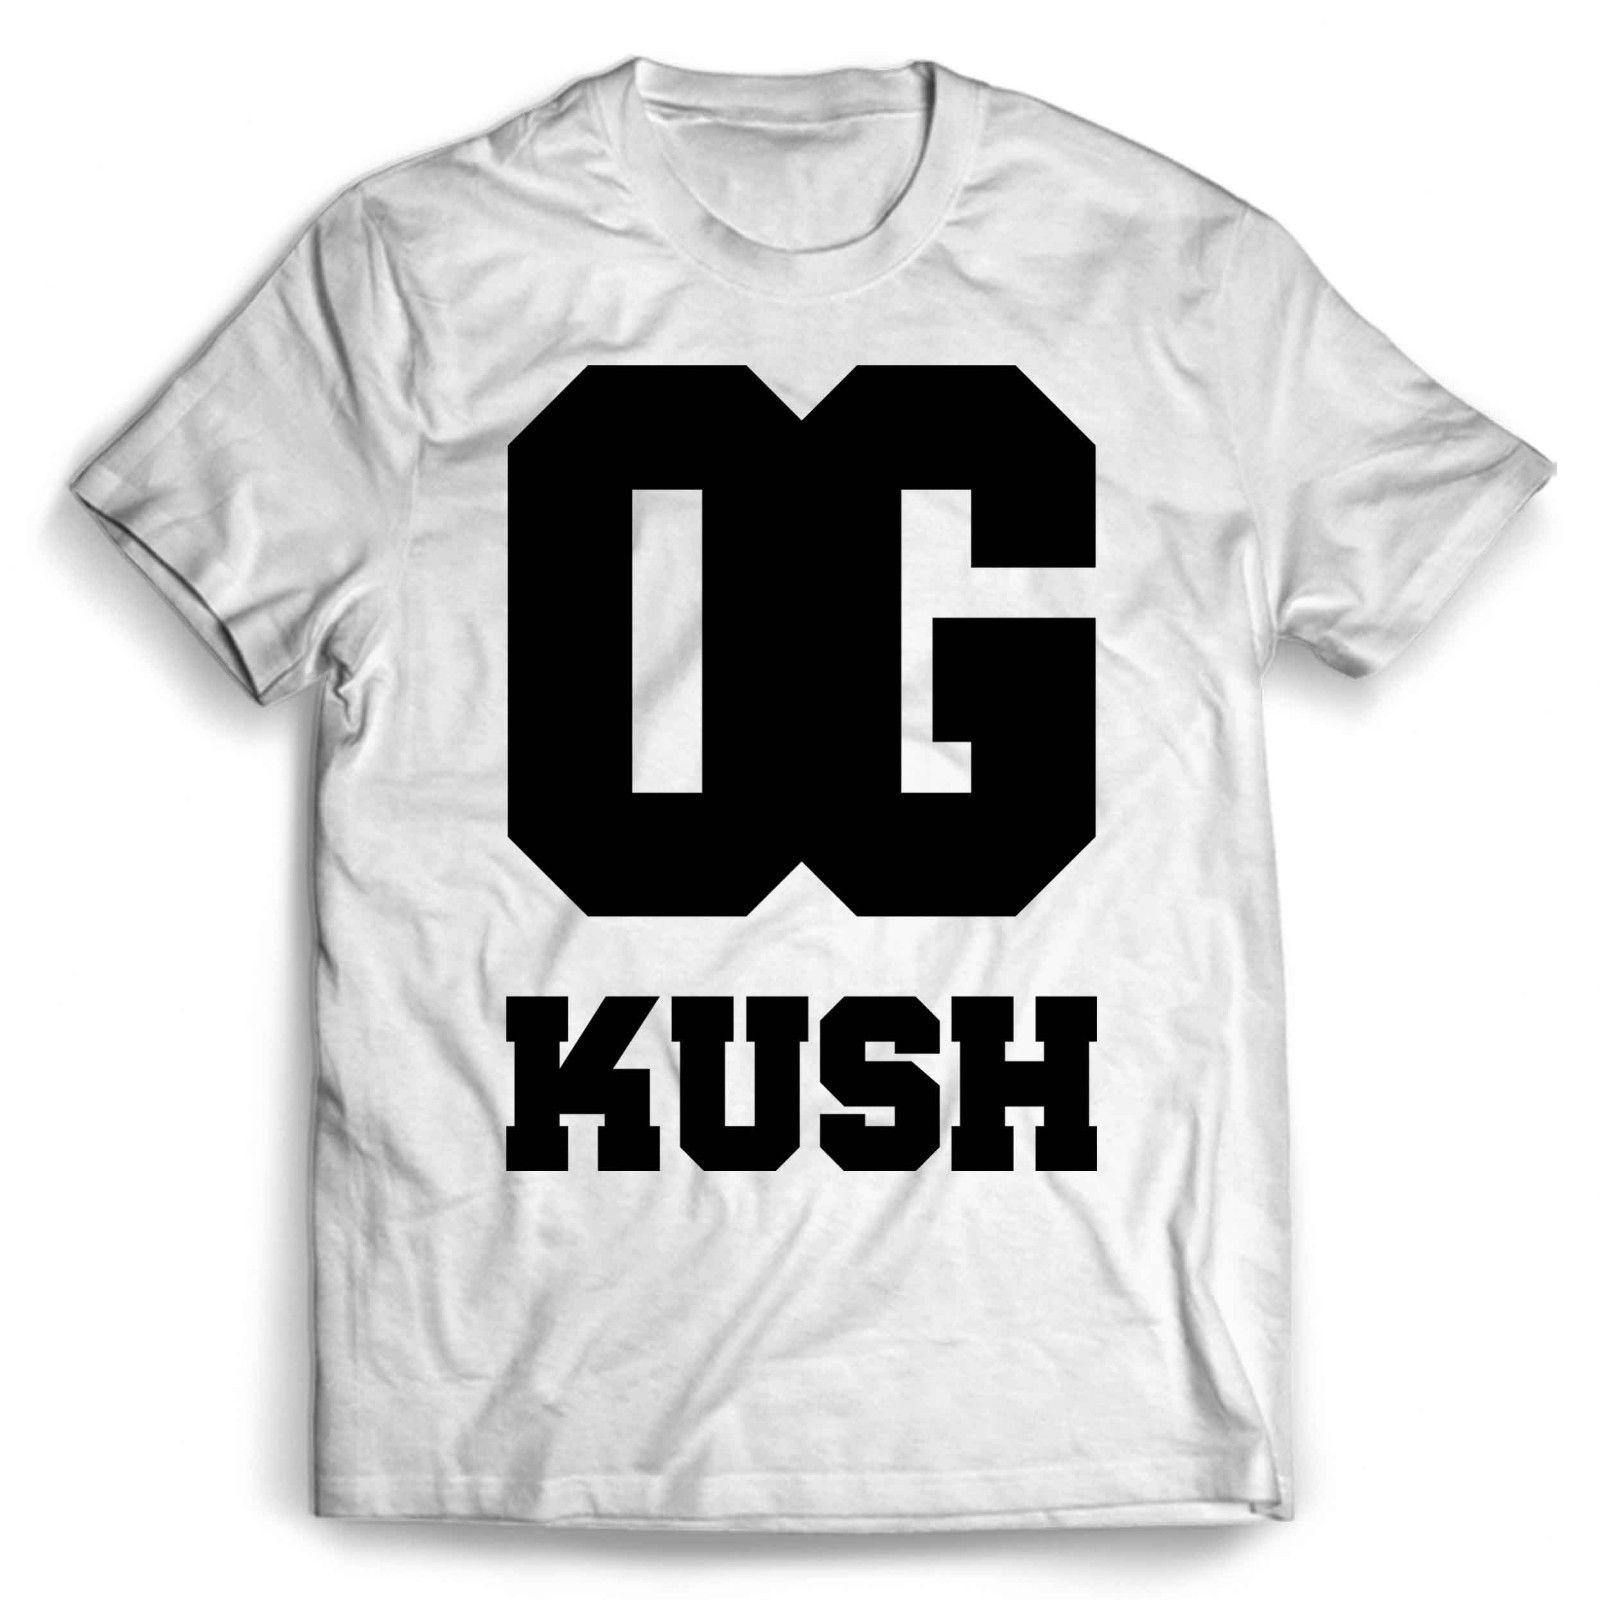 7073589d904 OG Kush Logo Man   Woman T Shirt Funny Unisex Casual Top Fitted Shirts T  Shirt Sale From Dappachappy